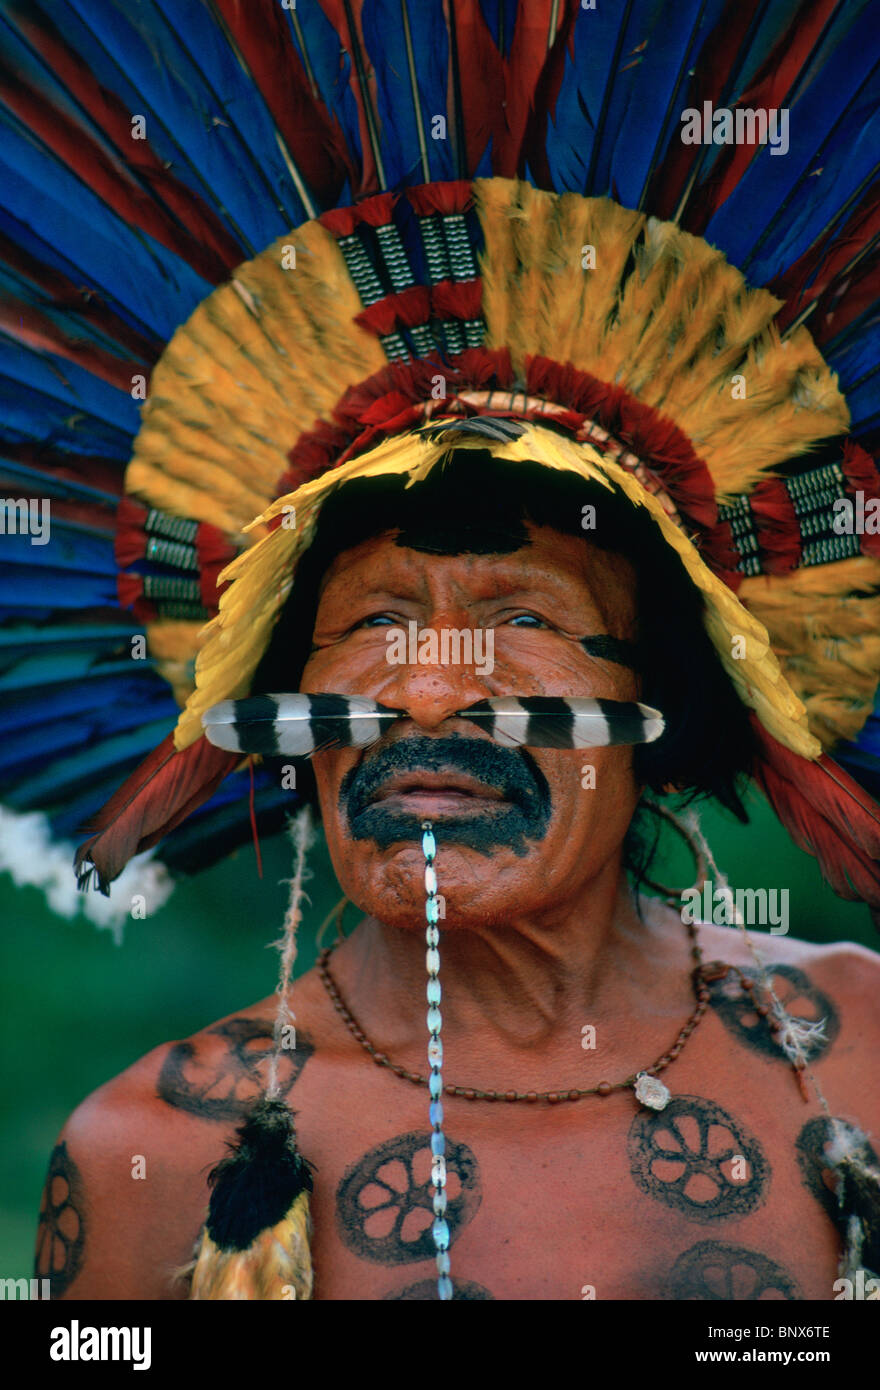 Portrait of a Bororo chieftain, wearing feather headdress and other adornments, Mato Grosso, Brazil - Stock Image